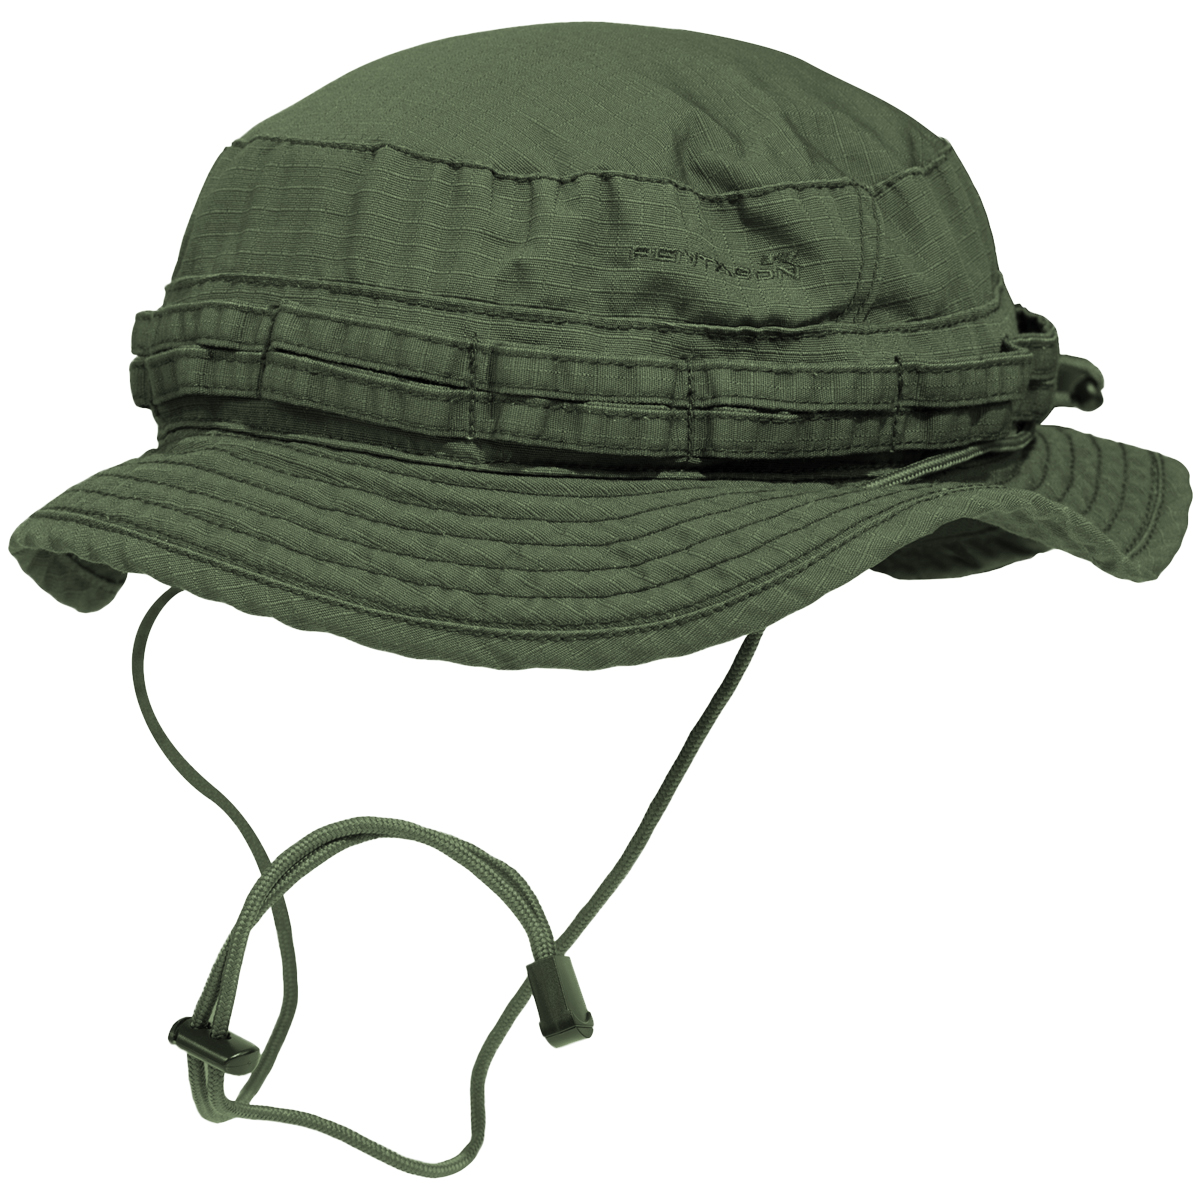 c02212b3a82 Details about Pentagon Babylon Boonie Hat Military Army Jungle Fishing  Outdoor Camo Green